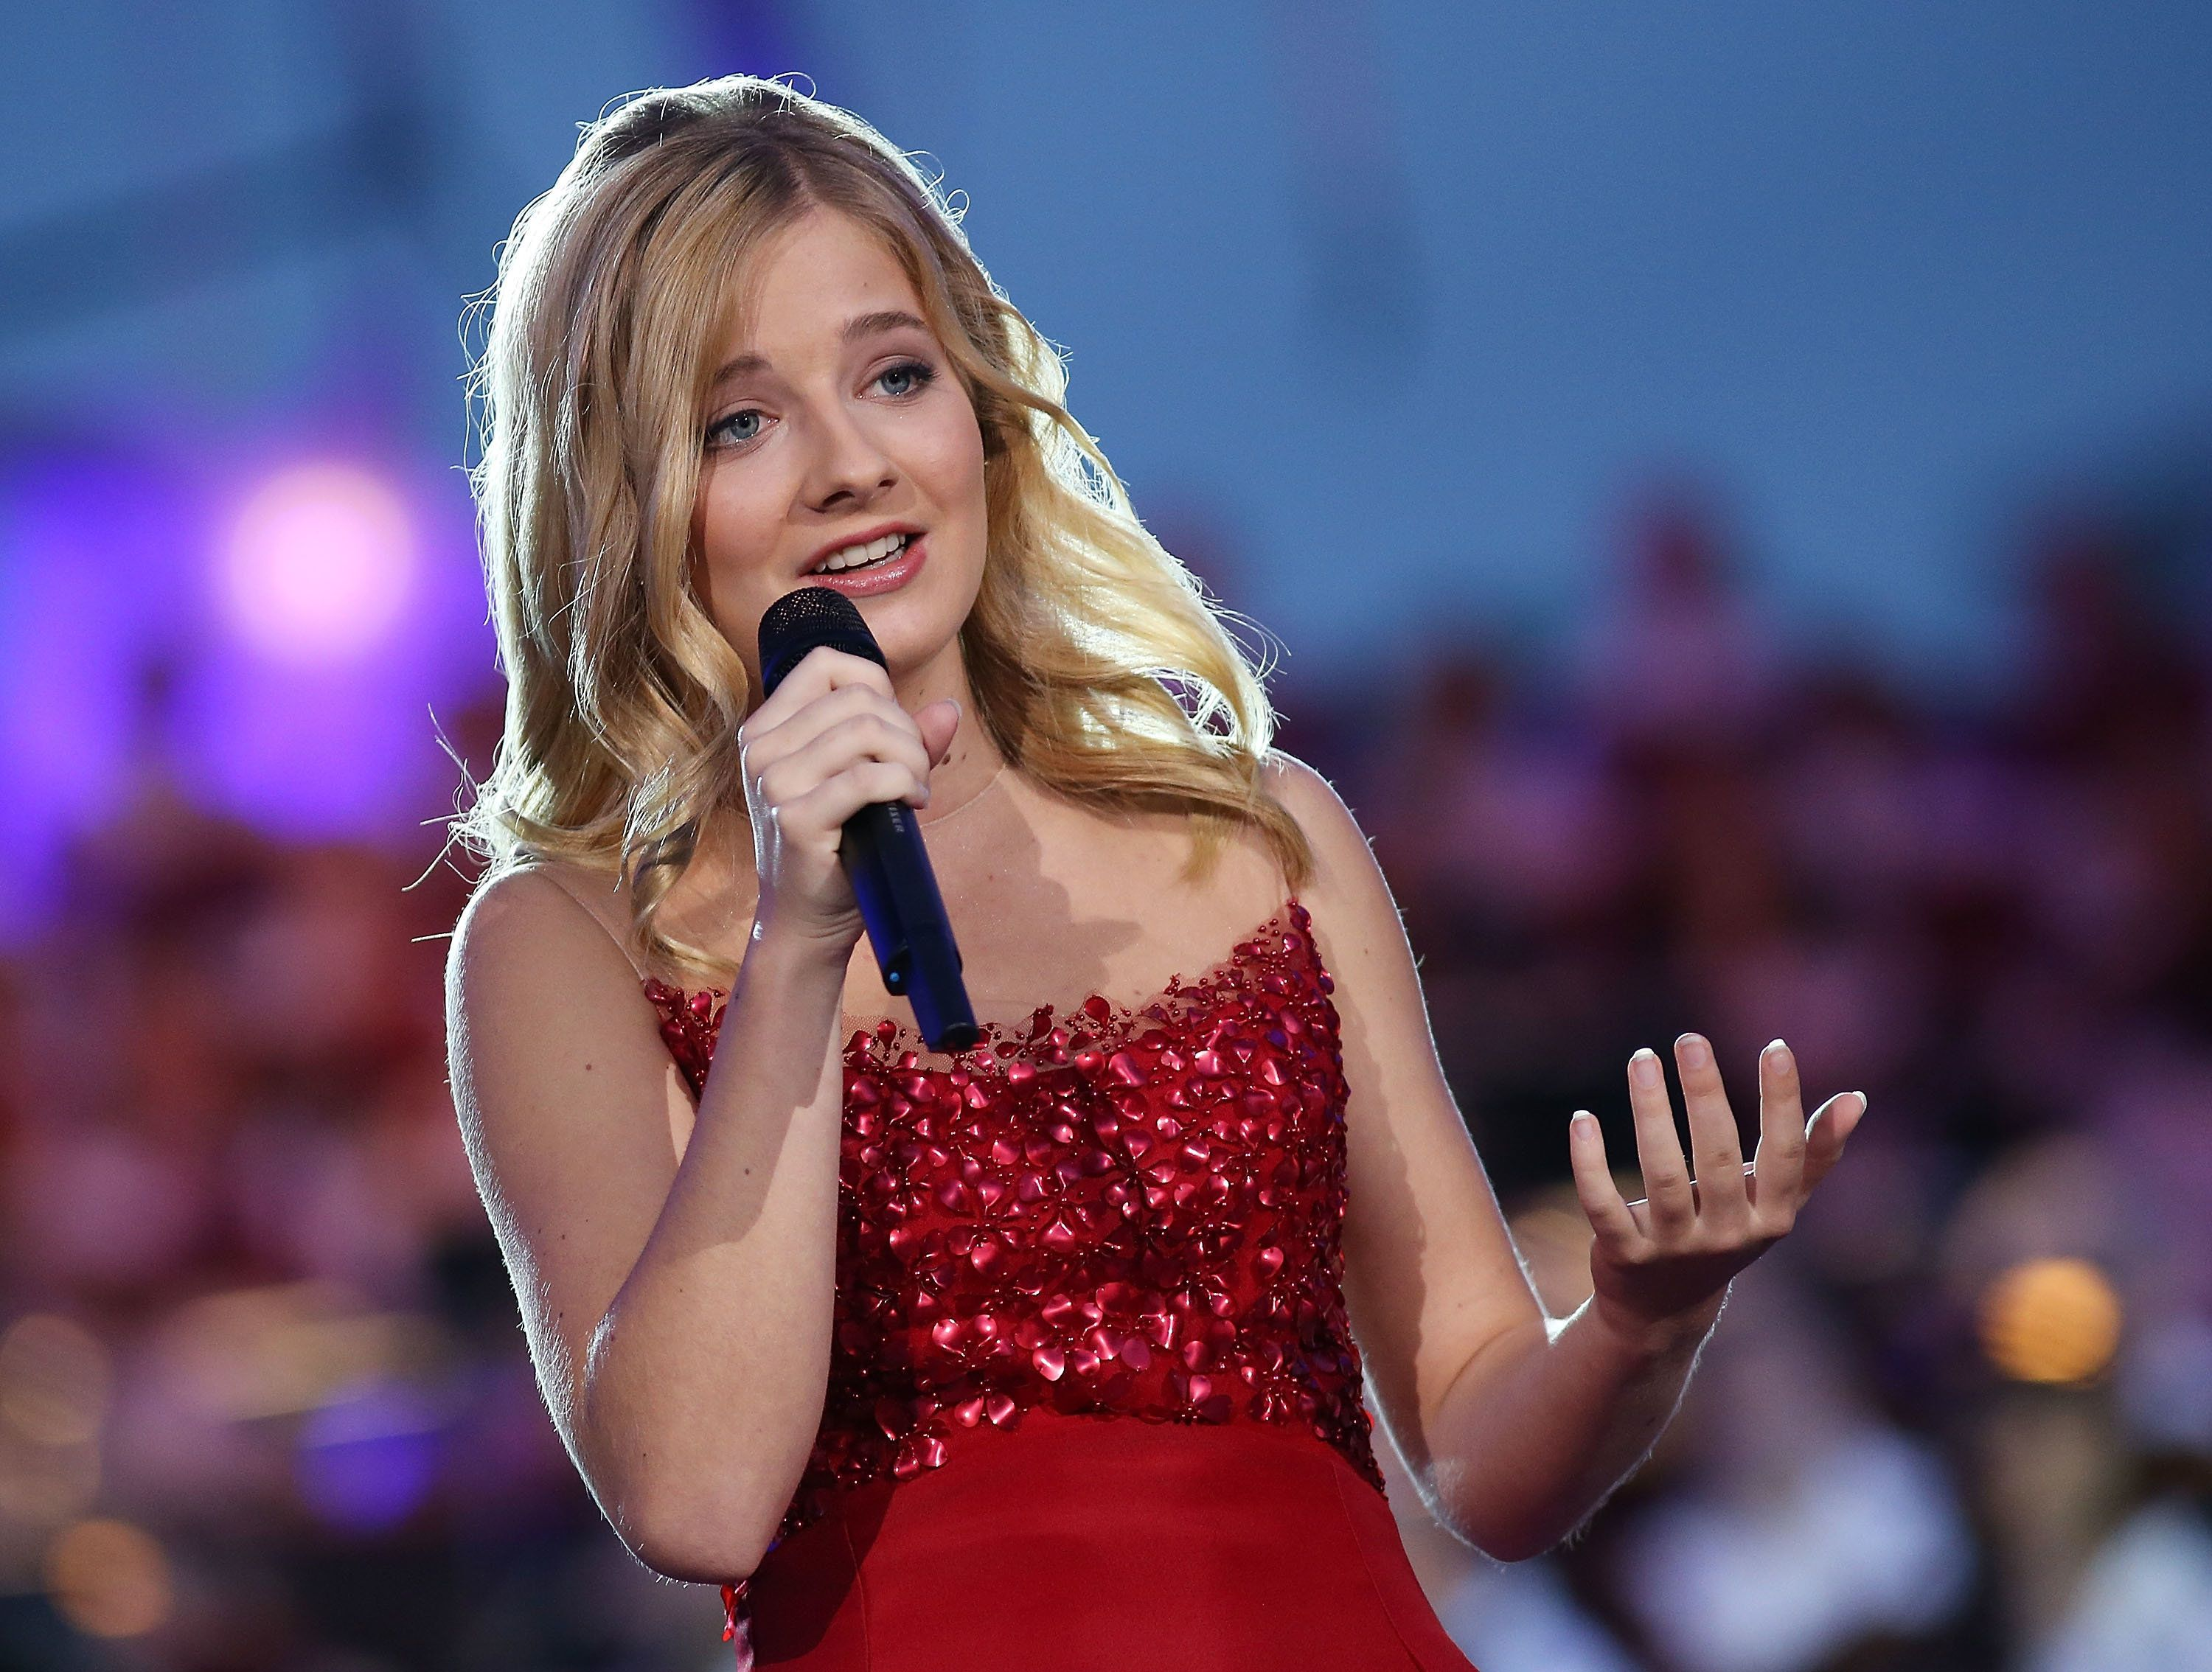 Jackie Evancho's  five previous studio albums never returned to the Billboard 200 after the inauguration announcement.